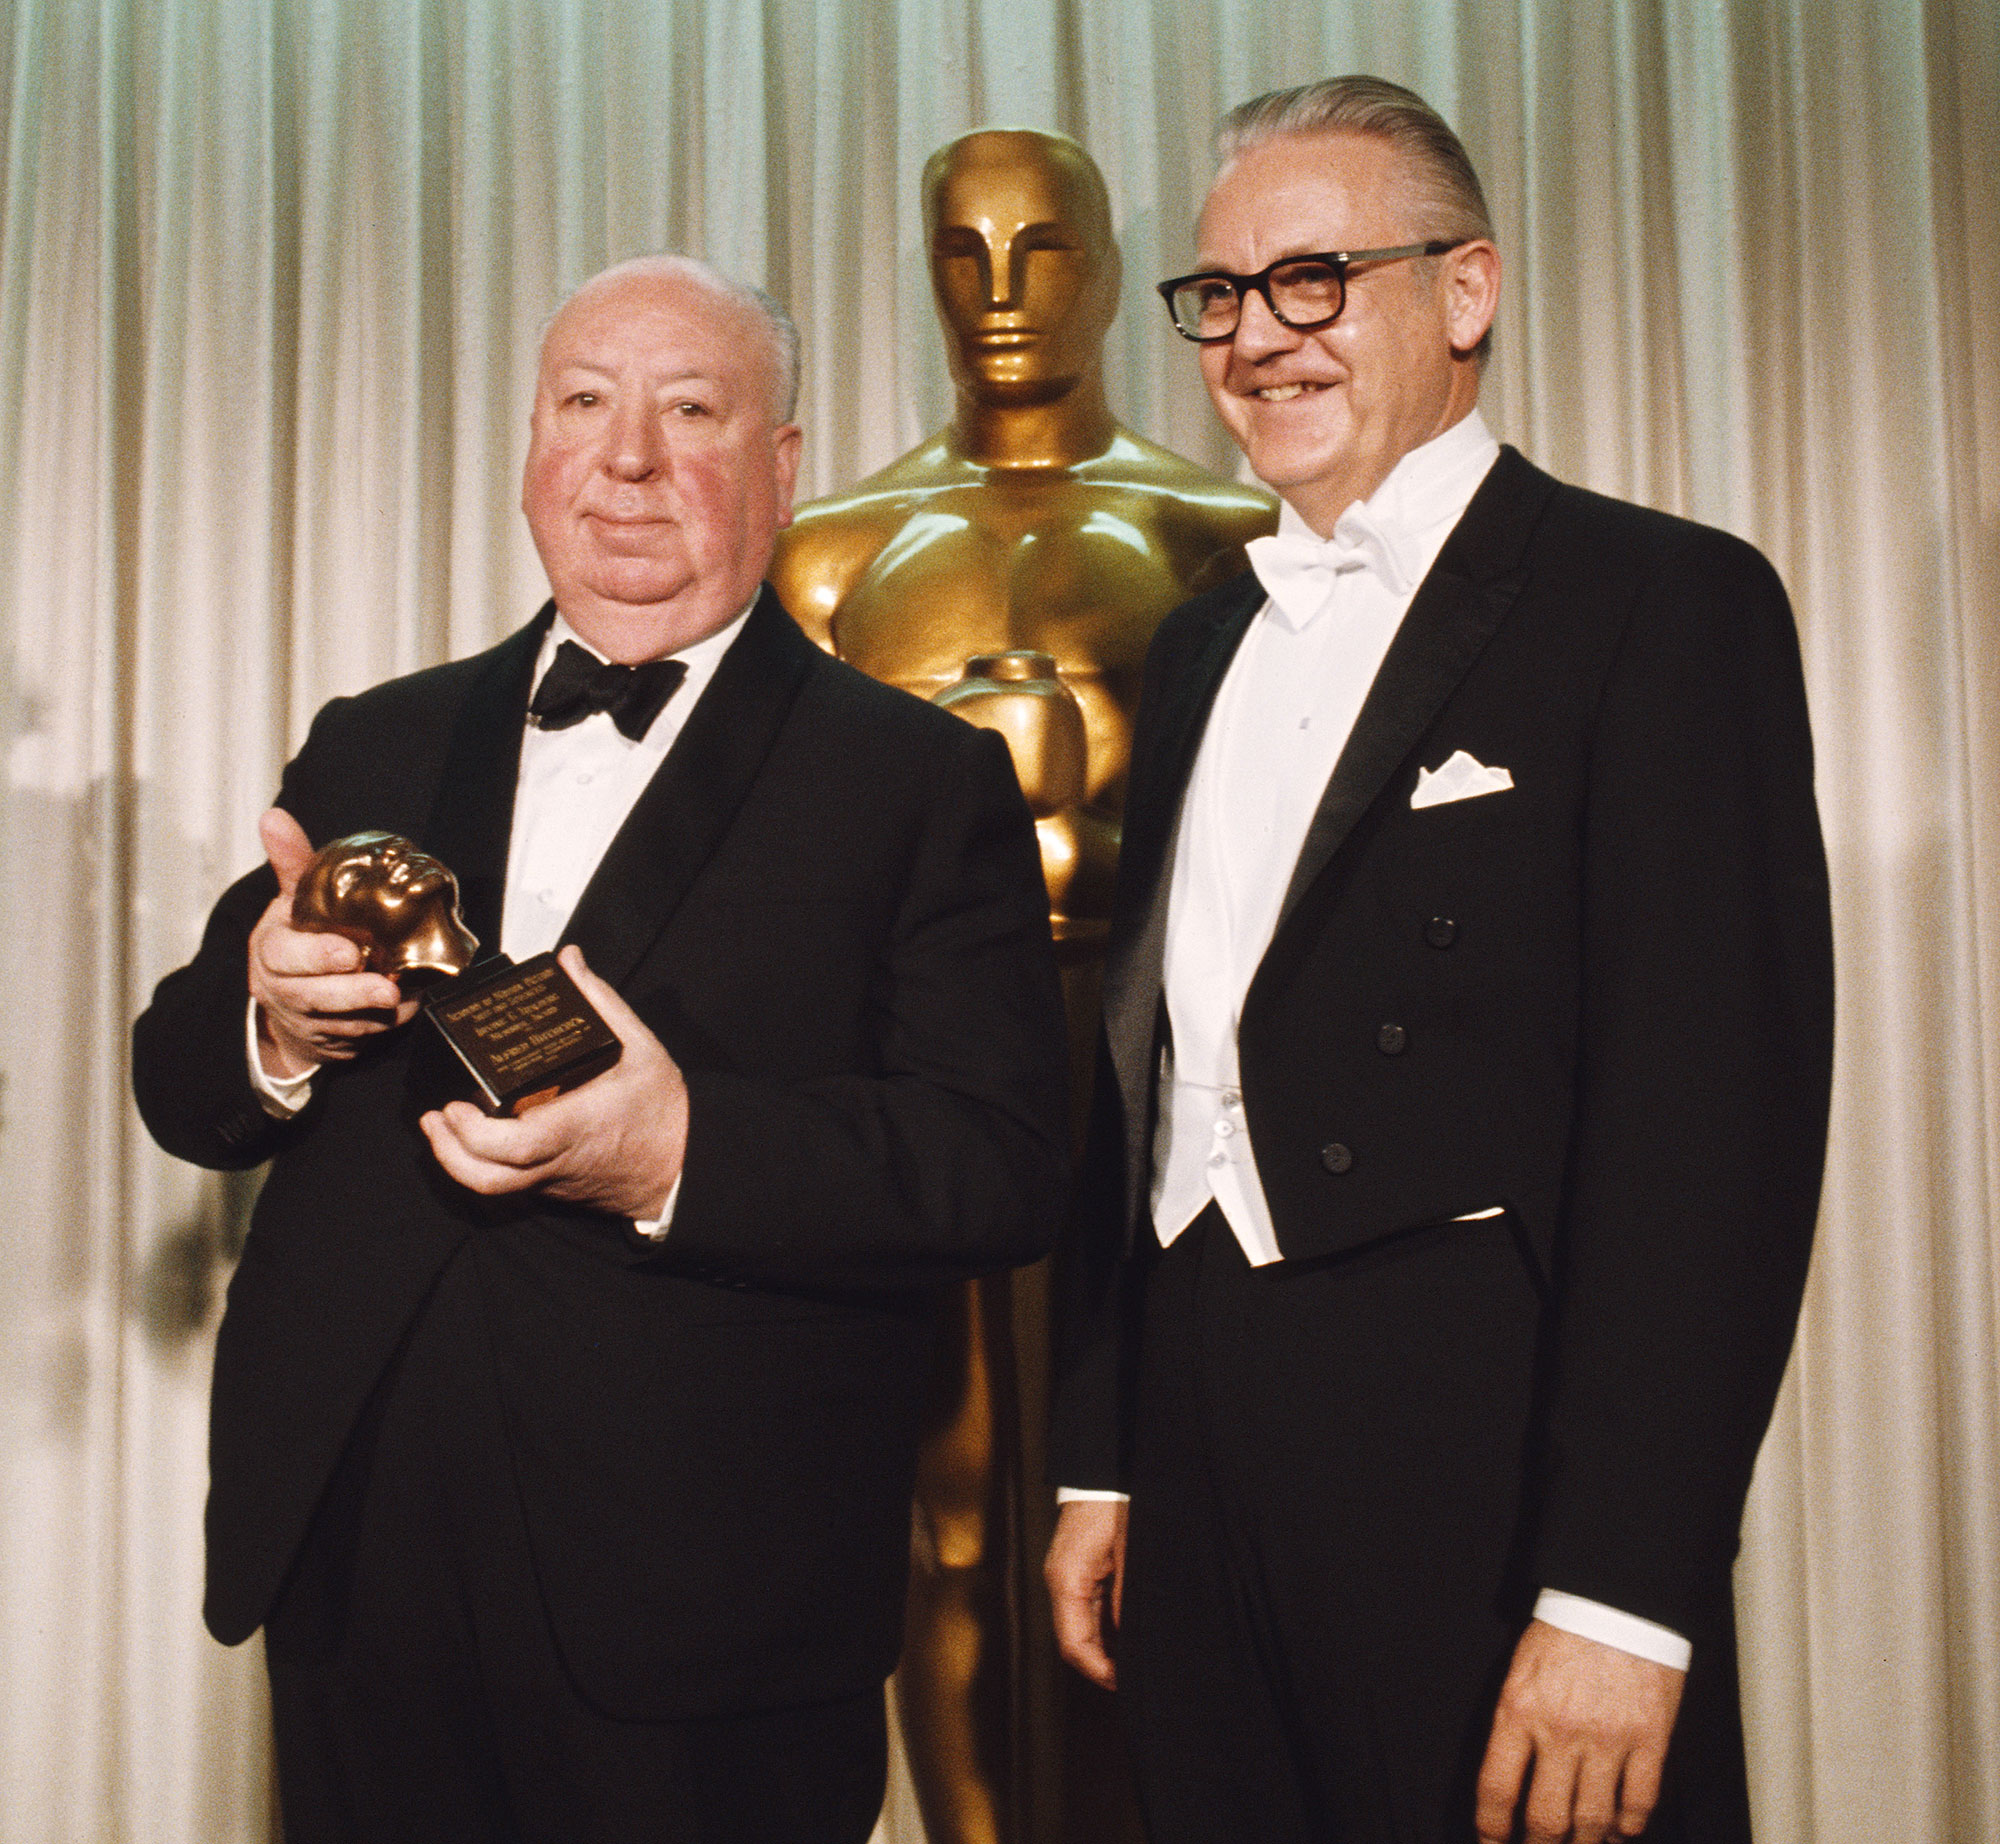 1968: ALFRED HITCHCOCK'S SHORT ACCEPTANCE SPEECH